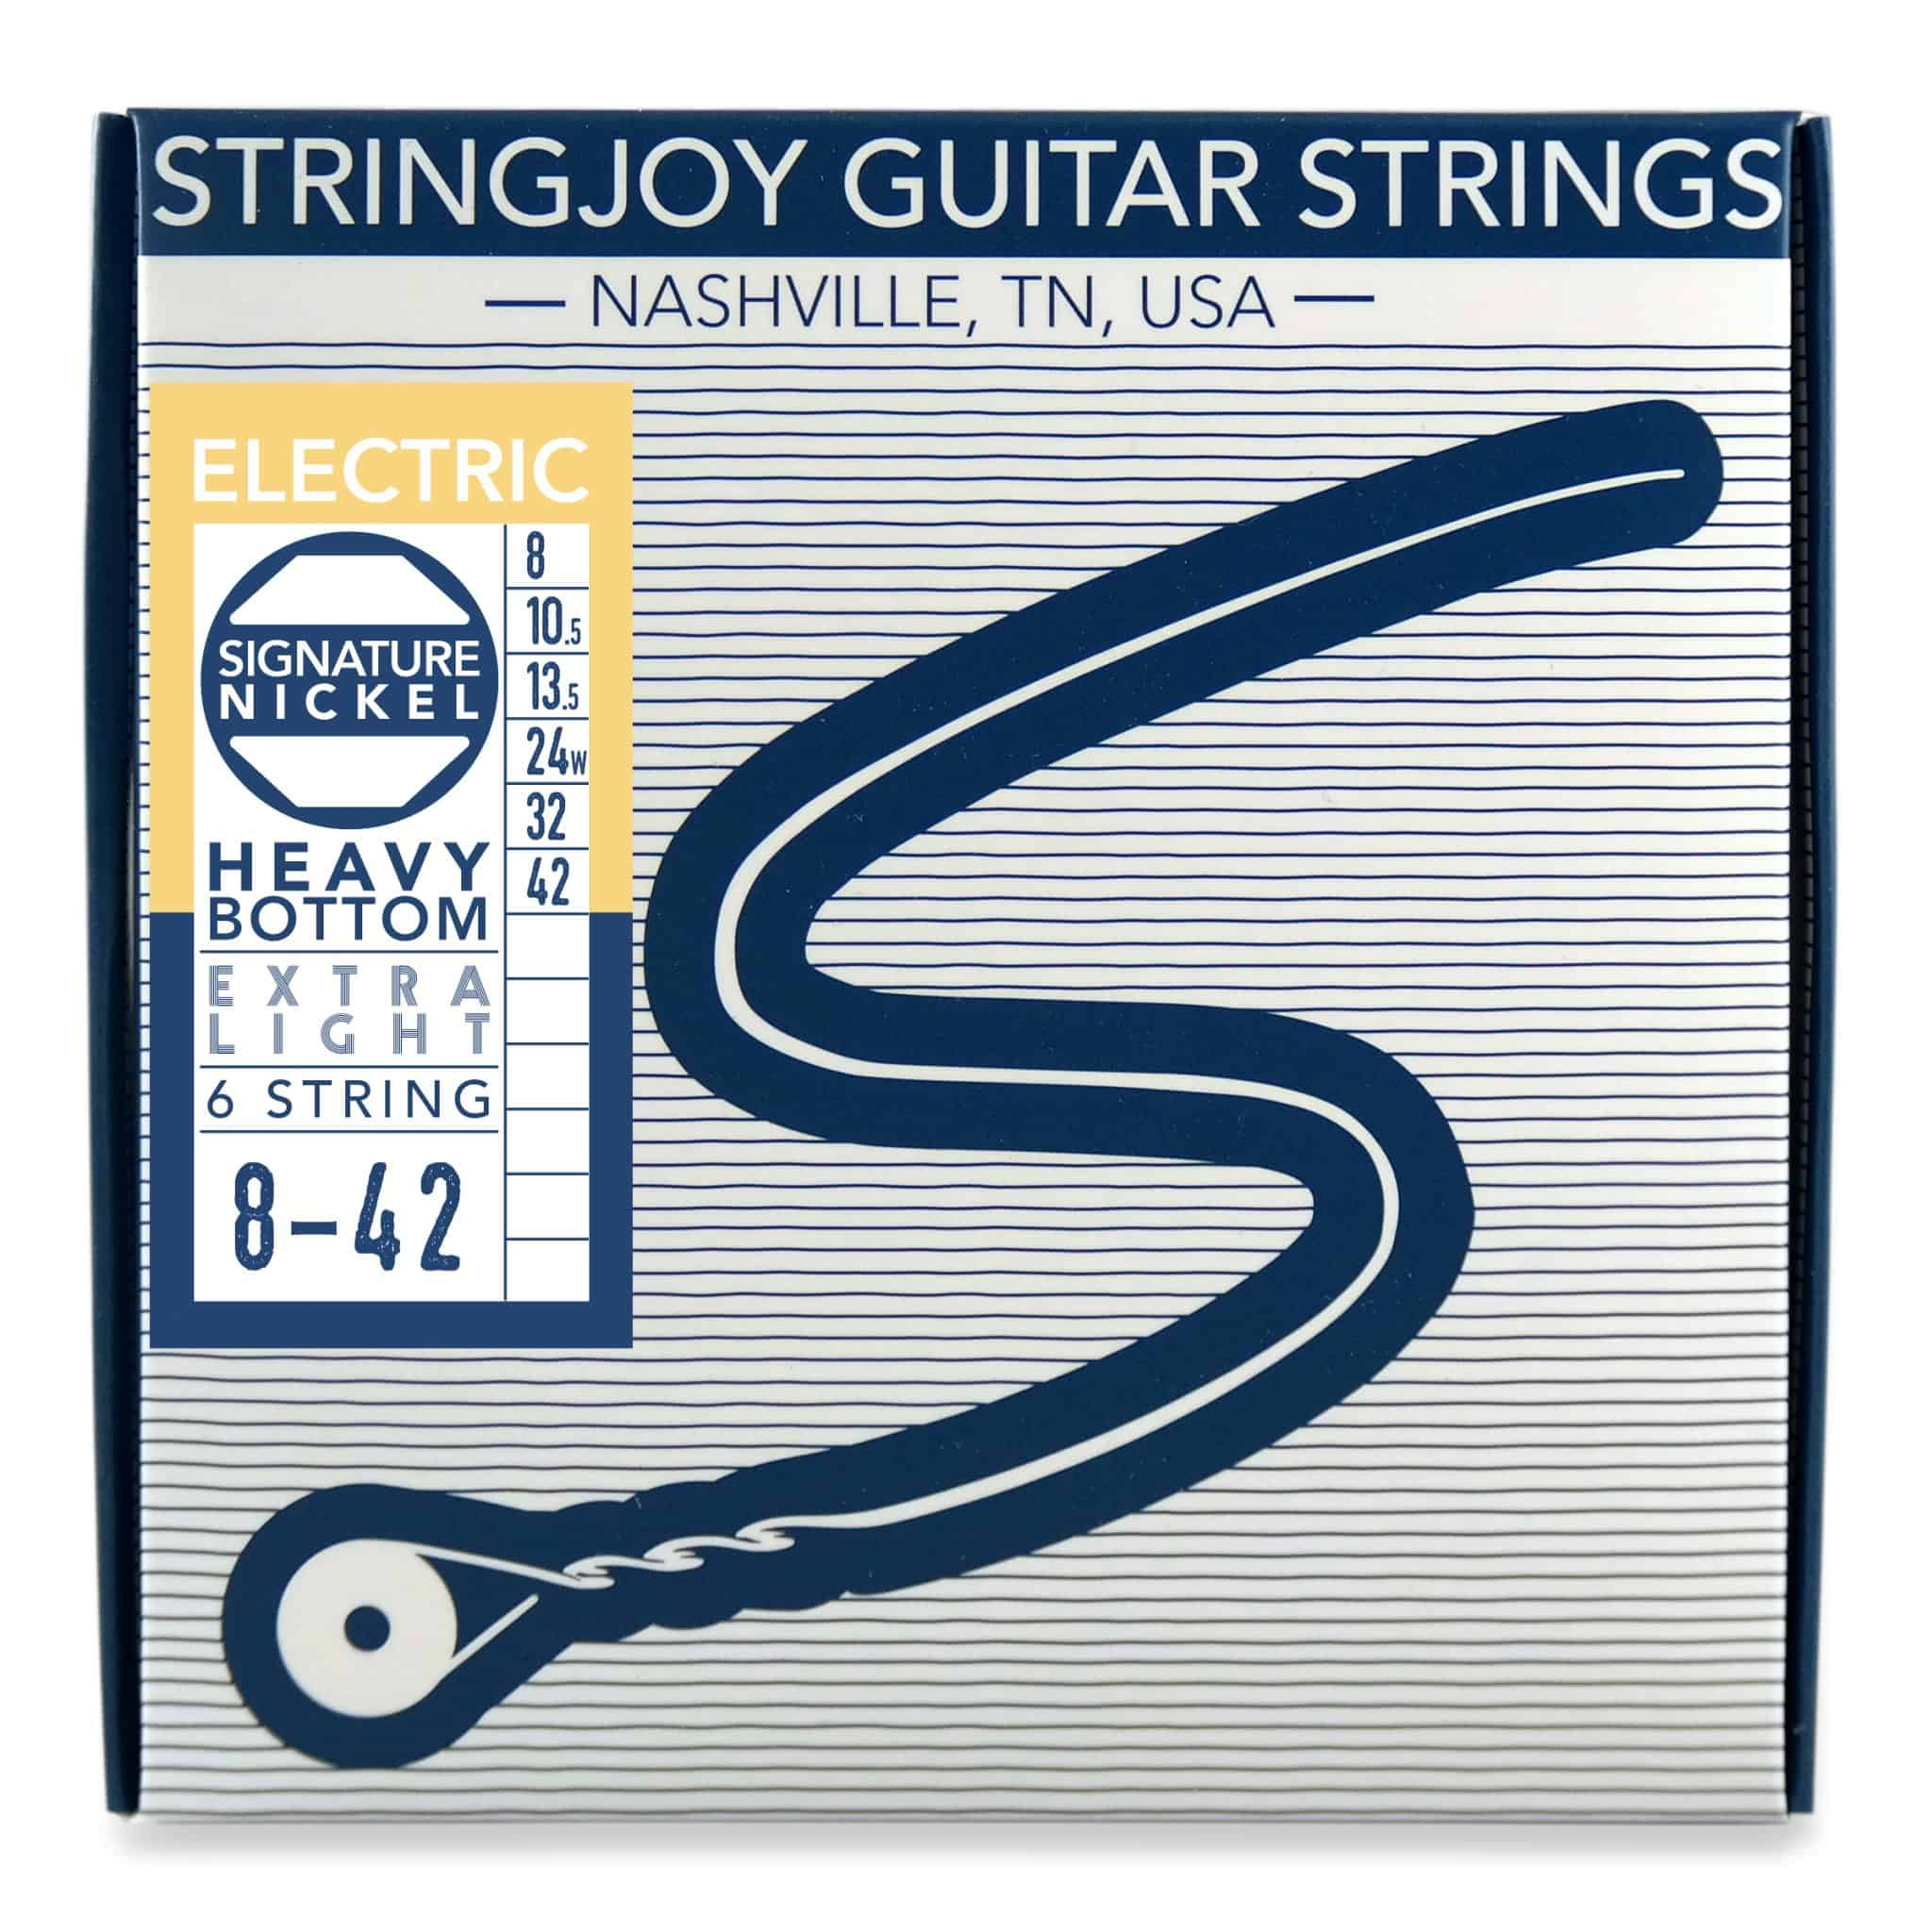 Stringjoy Signatures | Heavy Bottom Extra Light Gauge (8-42) Nickel Wound Electric Guitar Strings